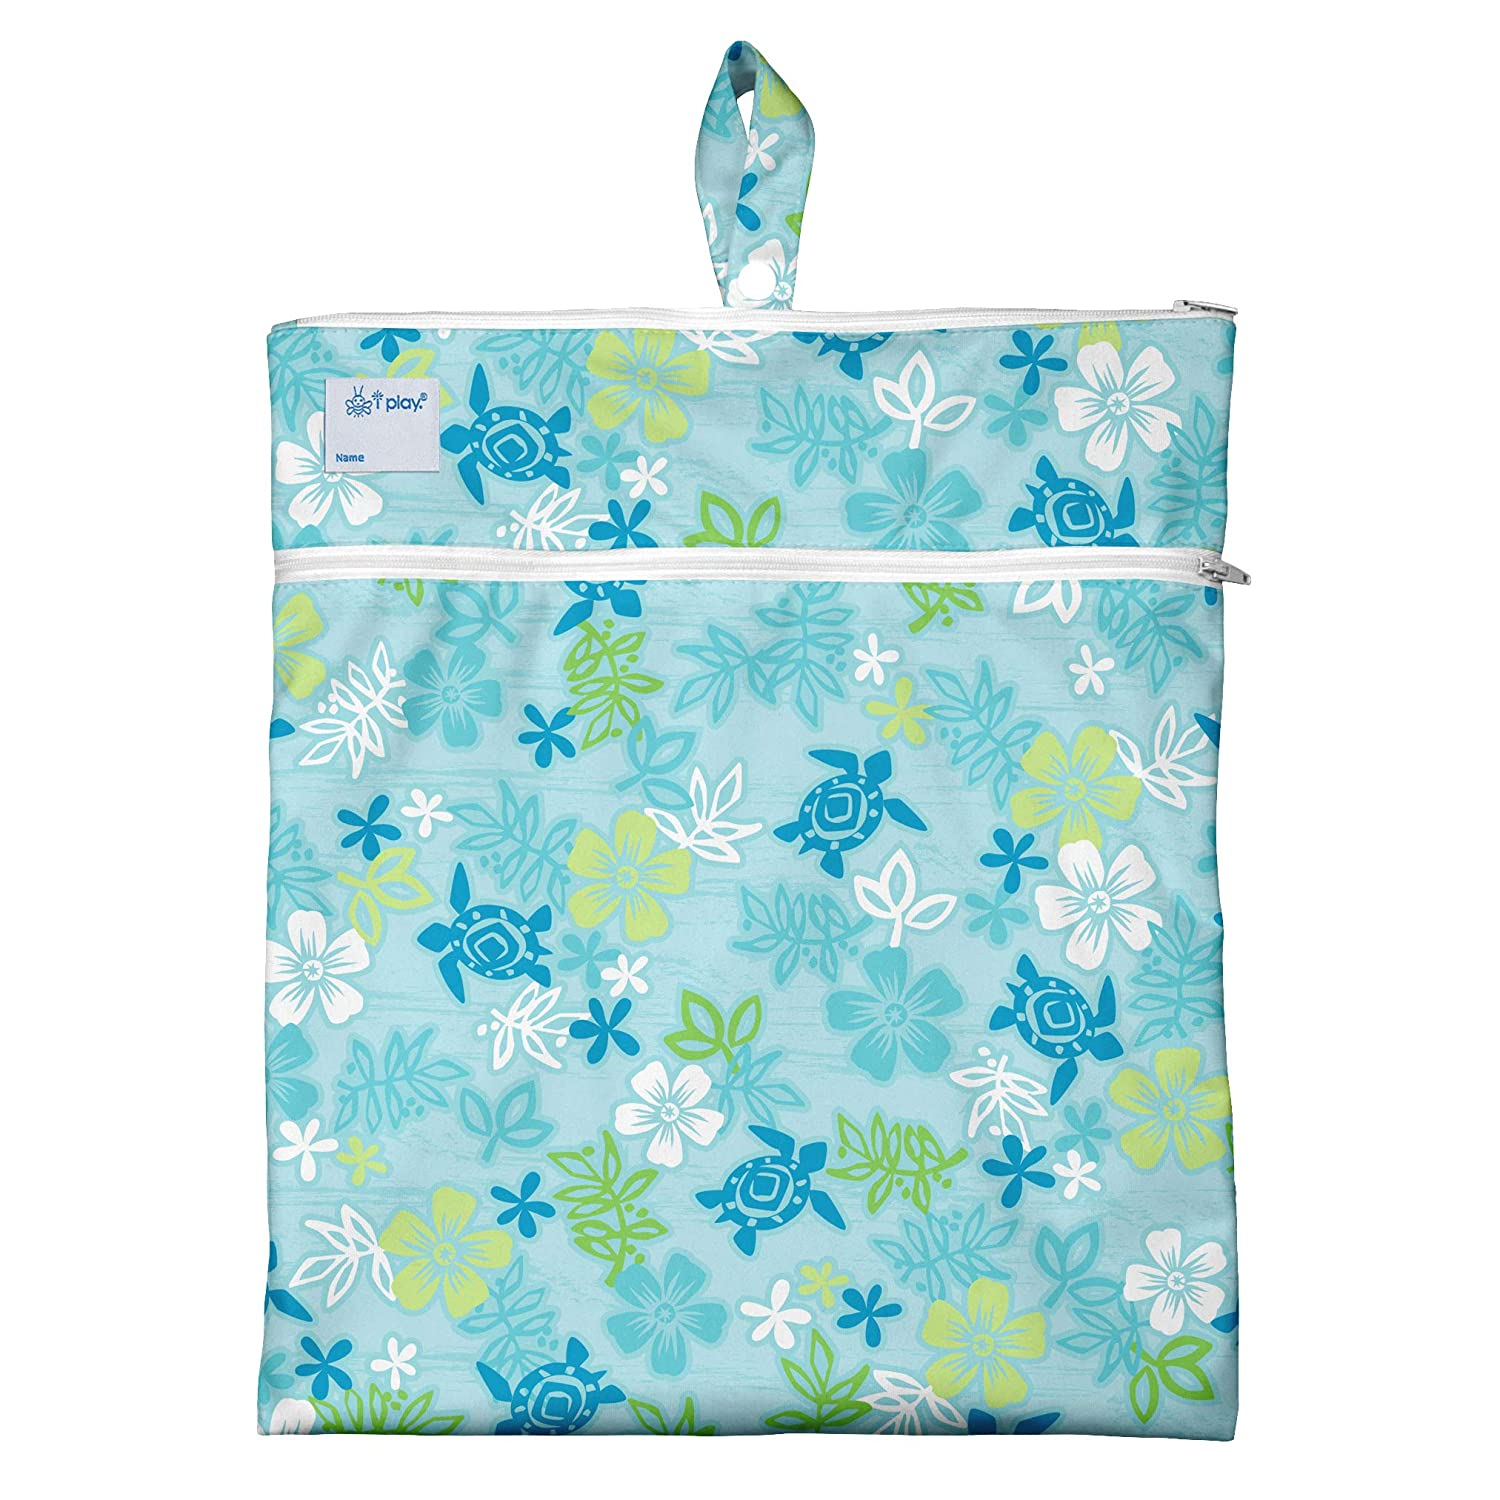 i play One-Size Stores wet /& dry items separately clothes /& more diapers Wet /& Dry Bag Use for swim wear Navy Octopus underwear